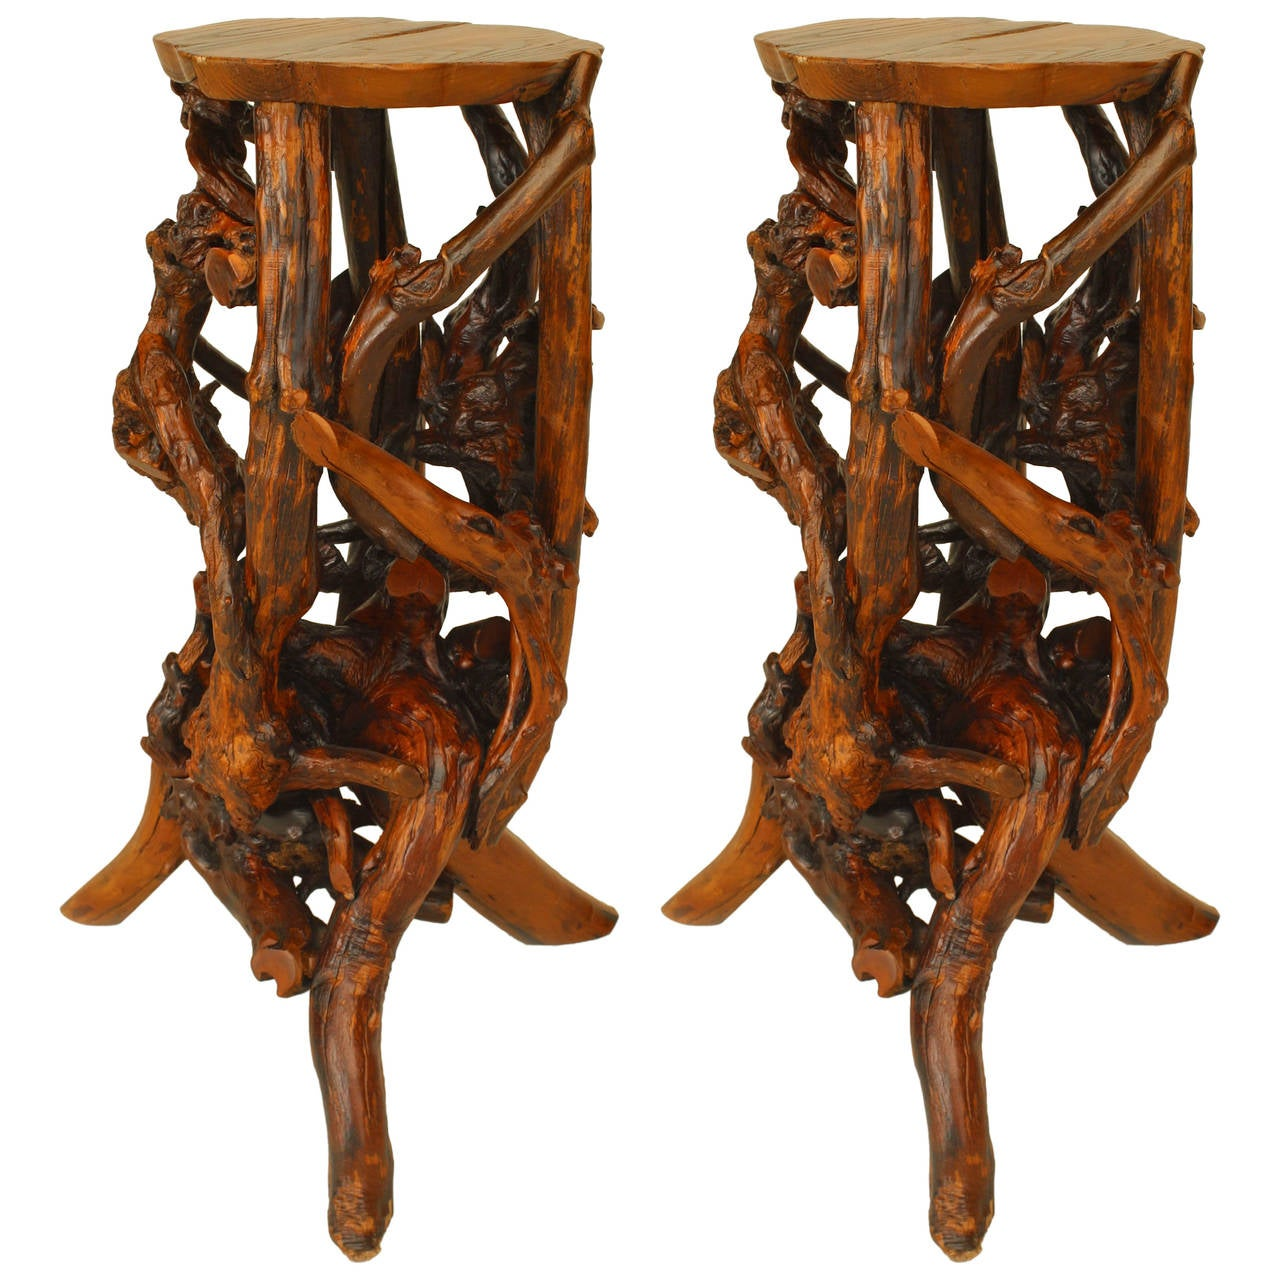 Small 20th C American Adirondack Style Root Pedestals For